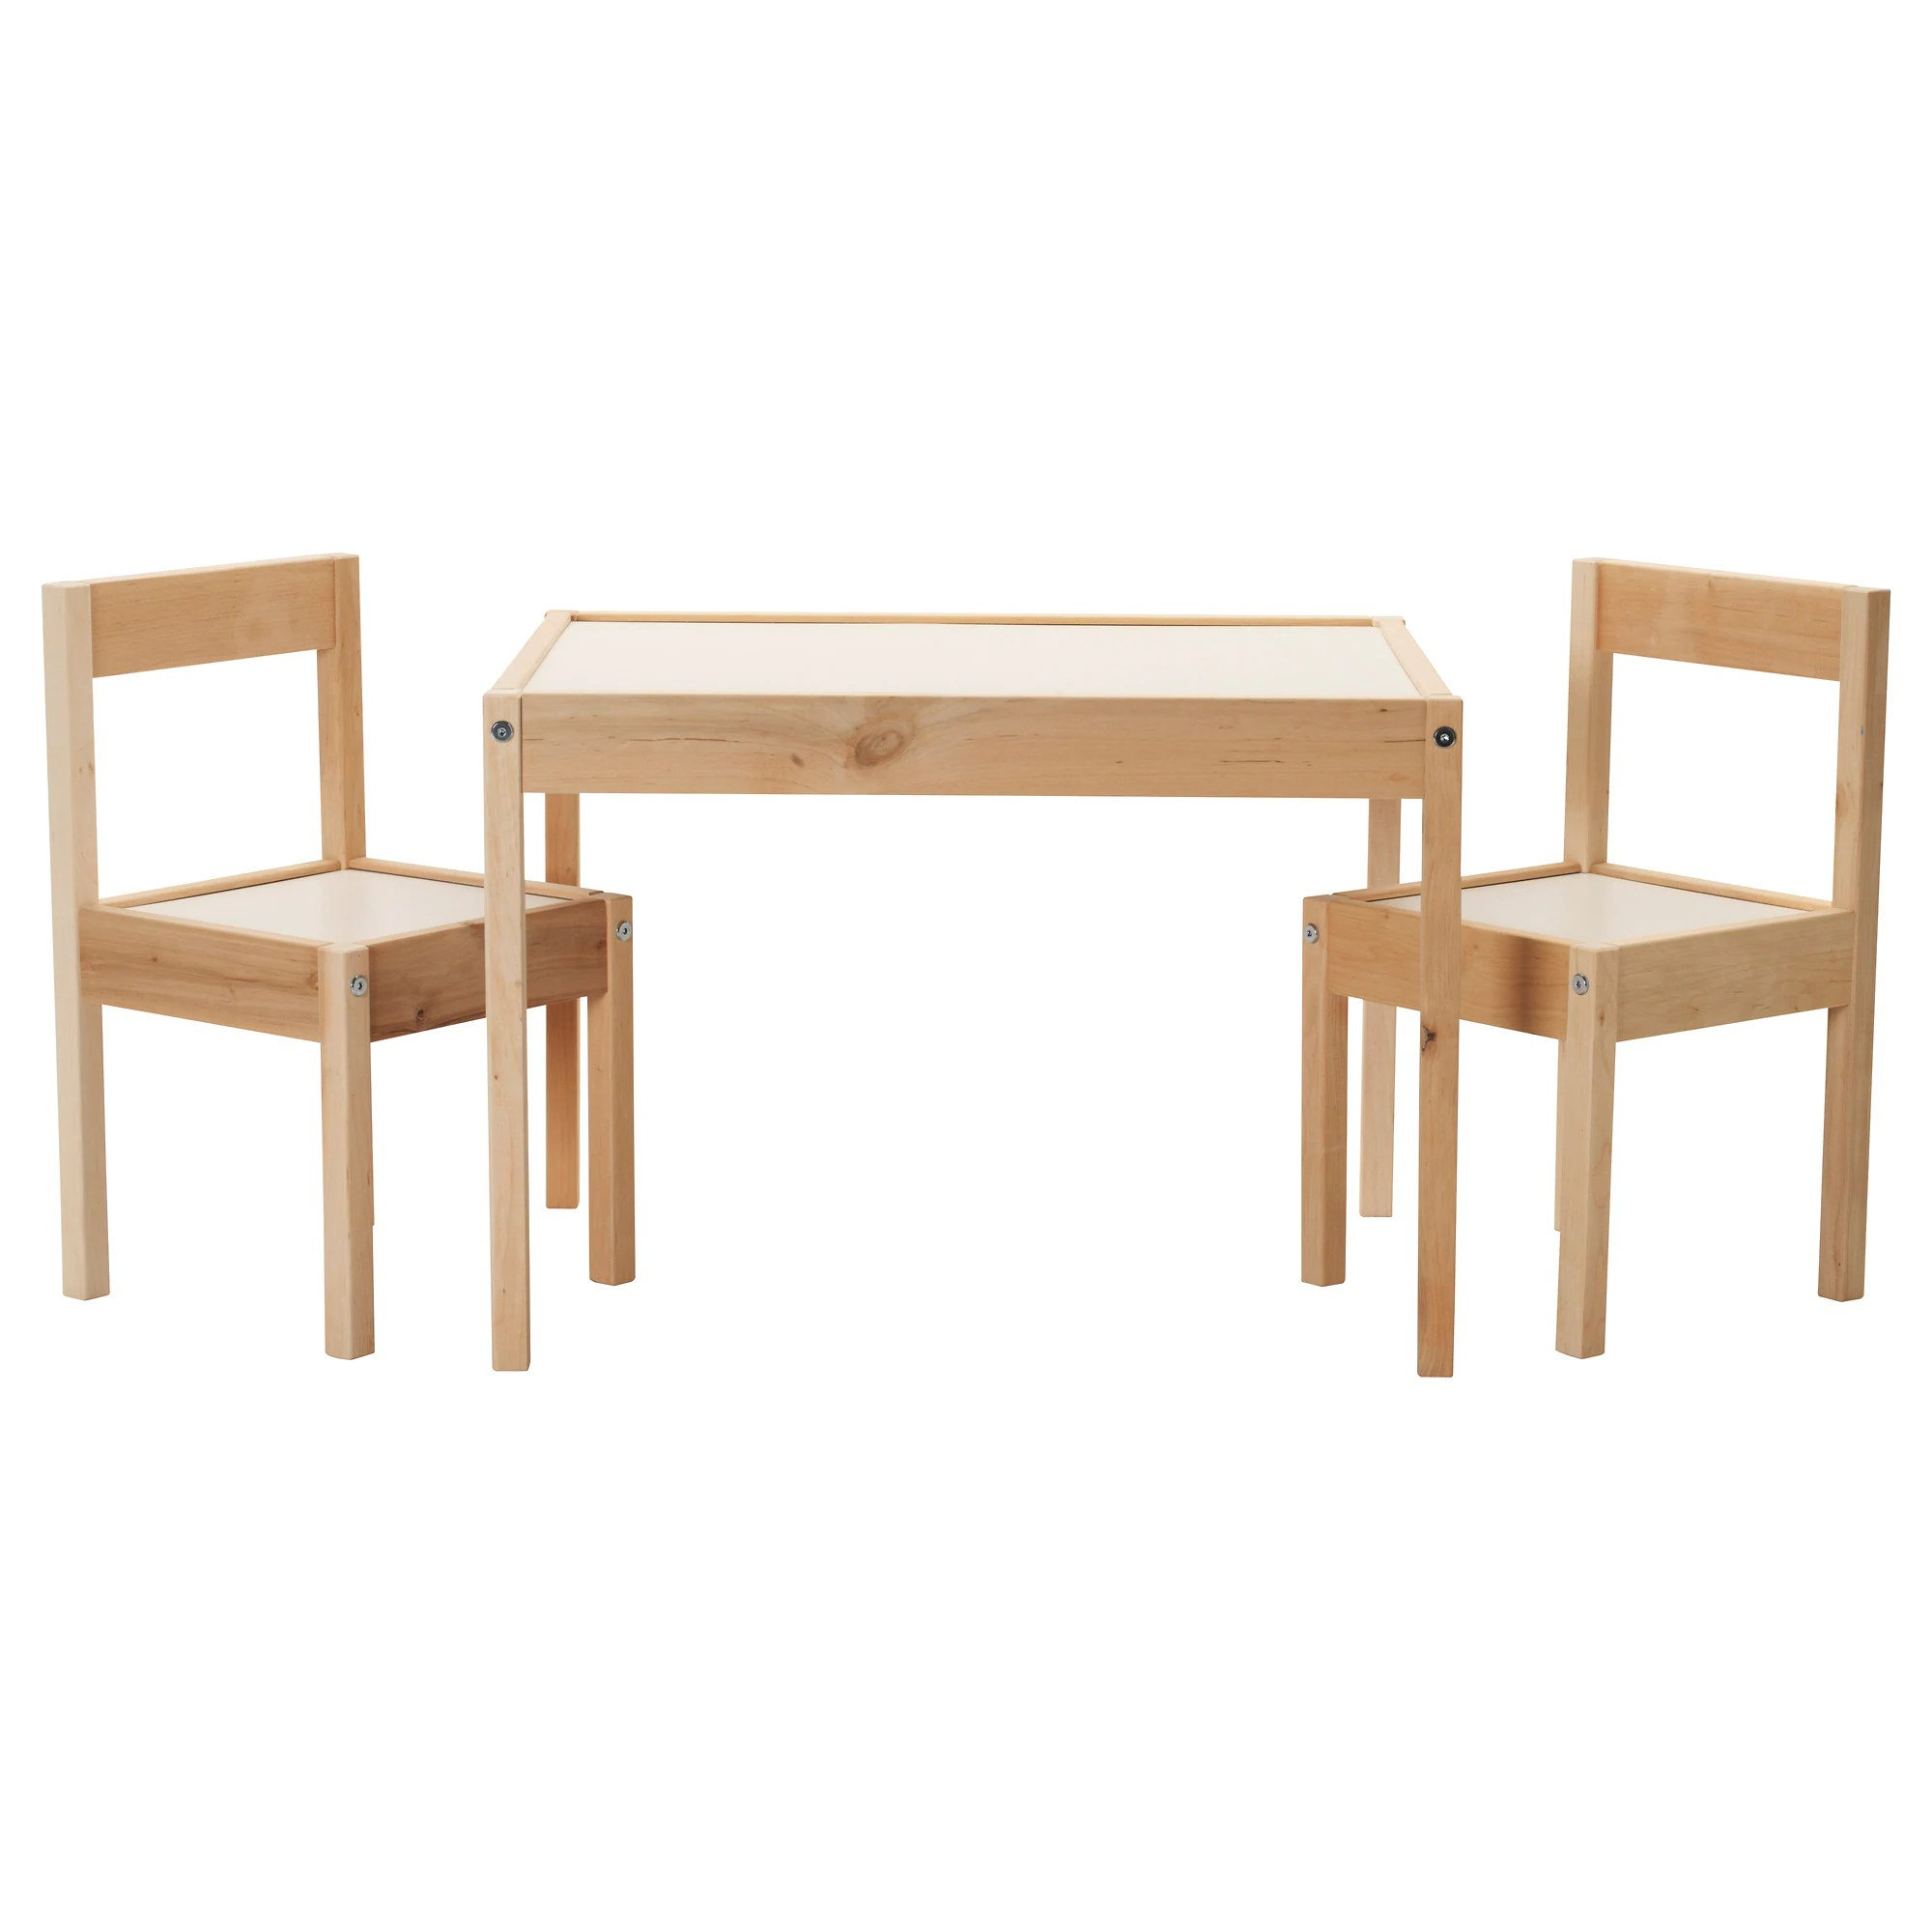 Ikea Küche Kinder Family Card LÄtt Children S Table And 2 Chairs White Pine